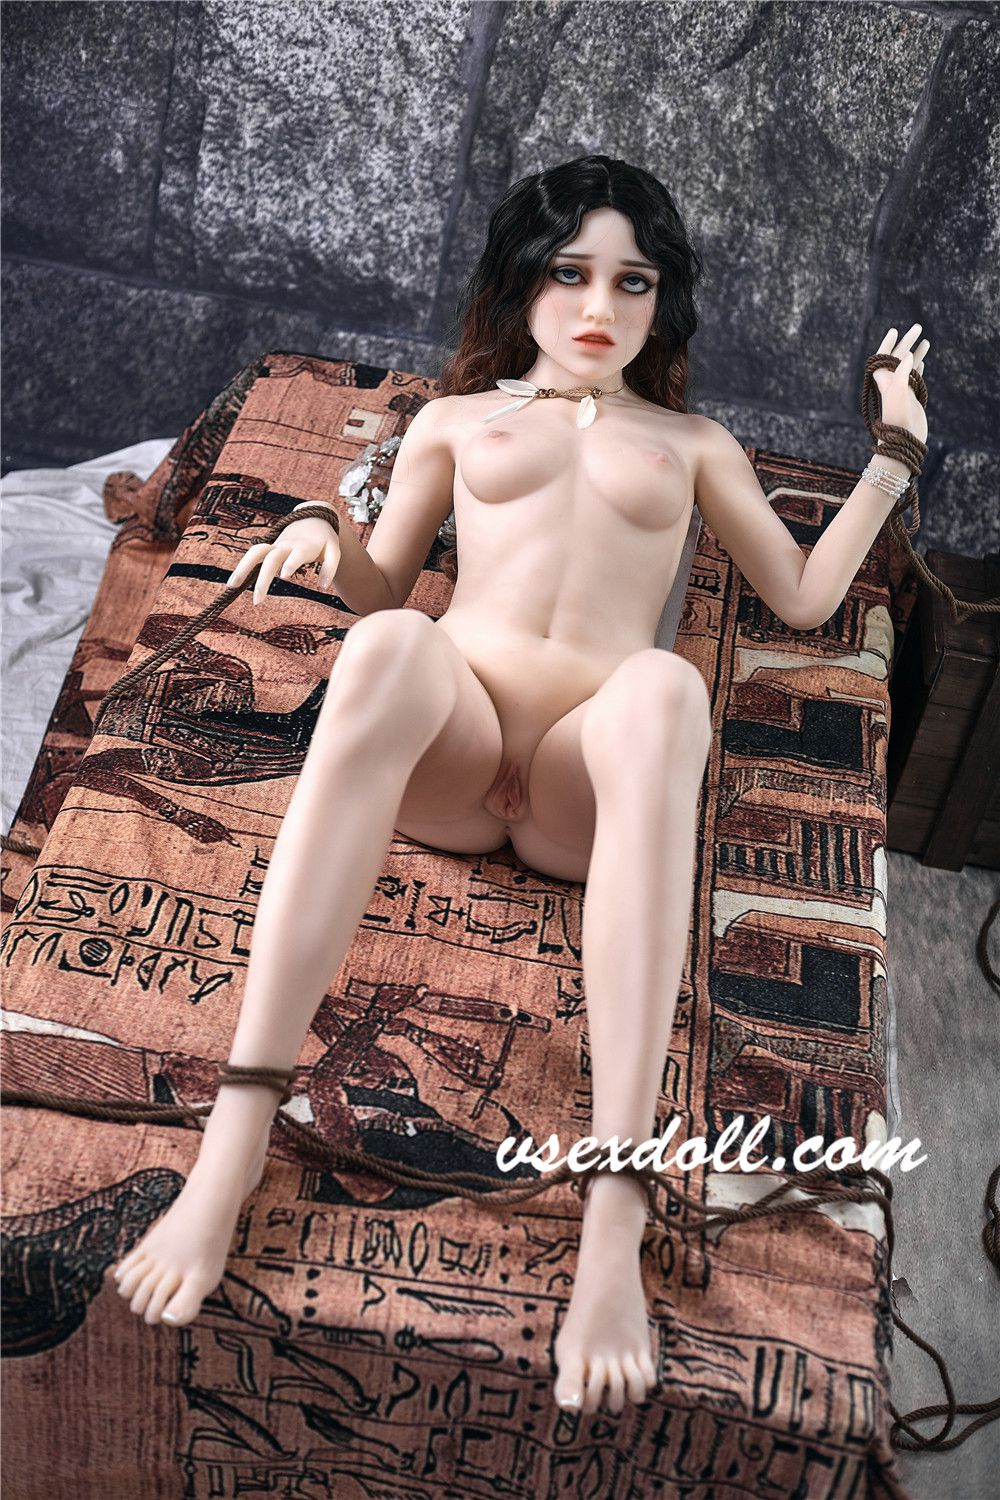 150cm Victoria Fairytale Black And Brown Curly Hair Imprisoned Girl Blonde Sex Doll